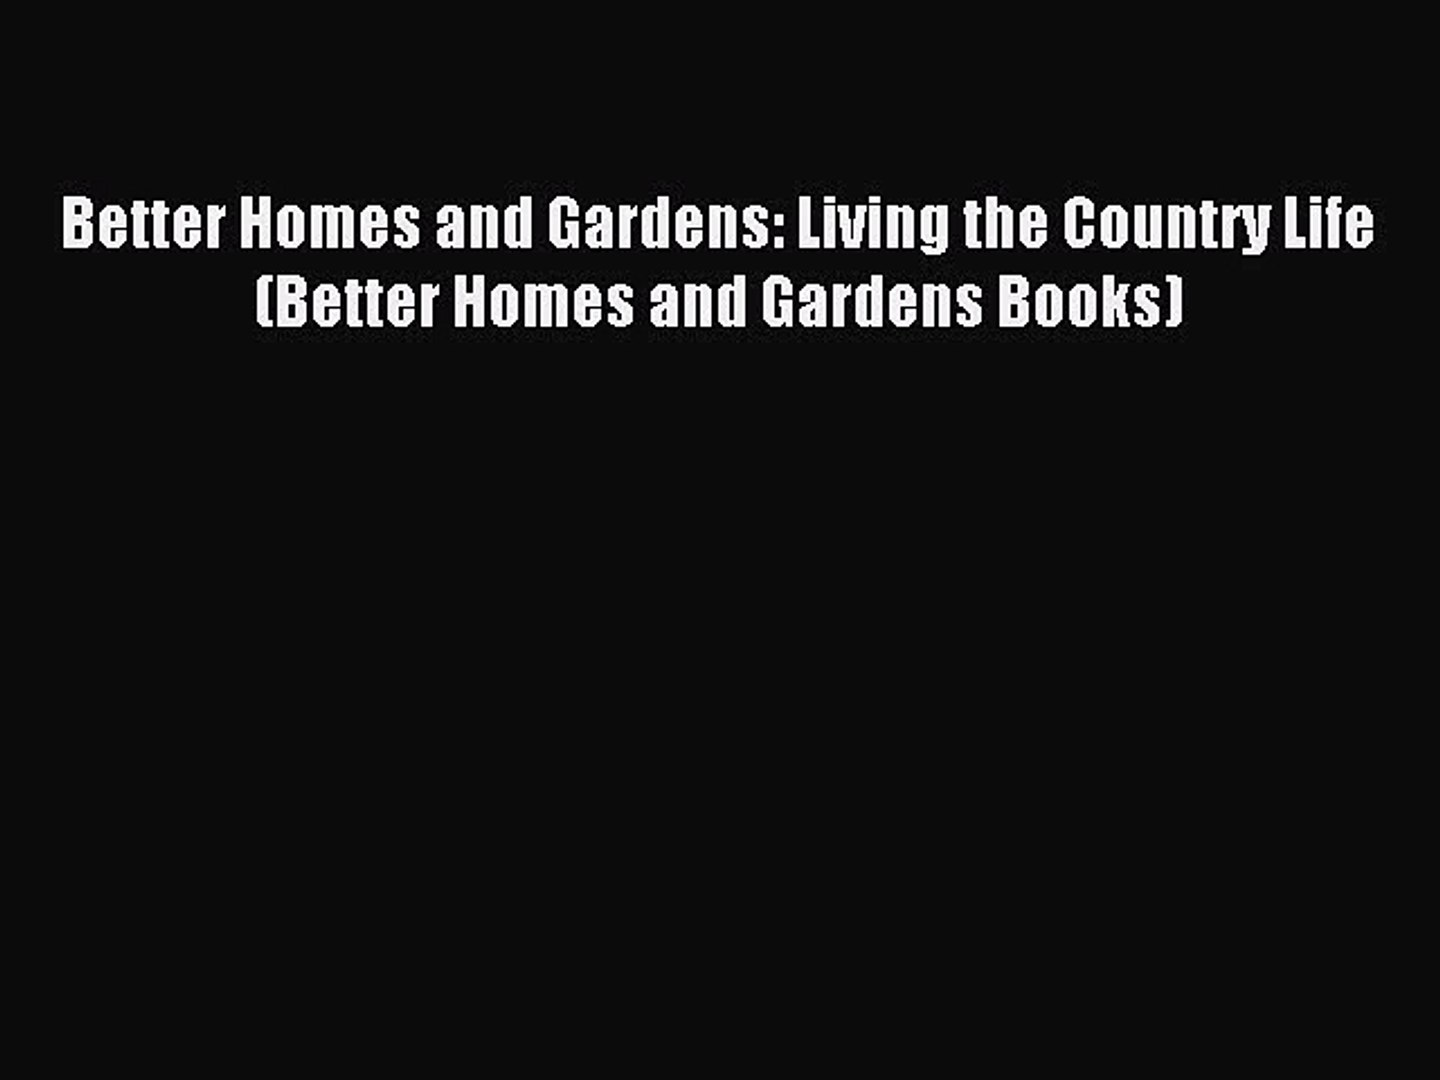 Read Better Homes and Gardens: Living the Country Life (Better Homes and Gardens Books) Ebook